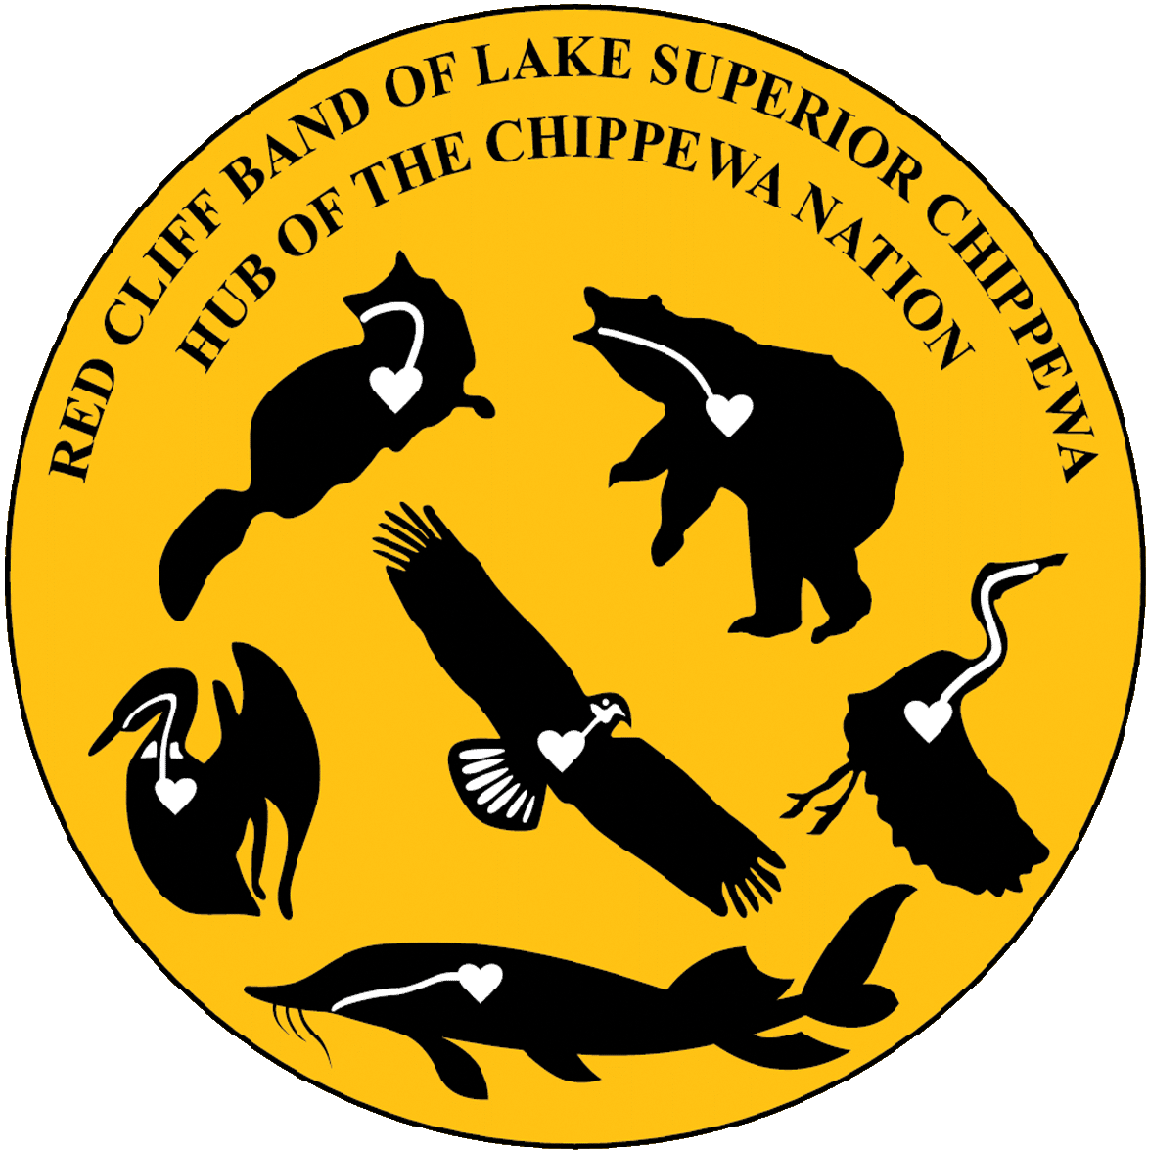 Seal of the Red Cliff Band of Lake Superior Chippewa